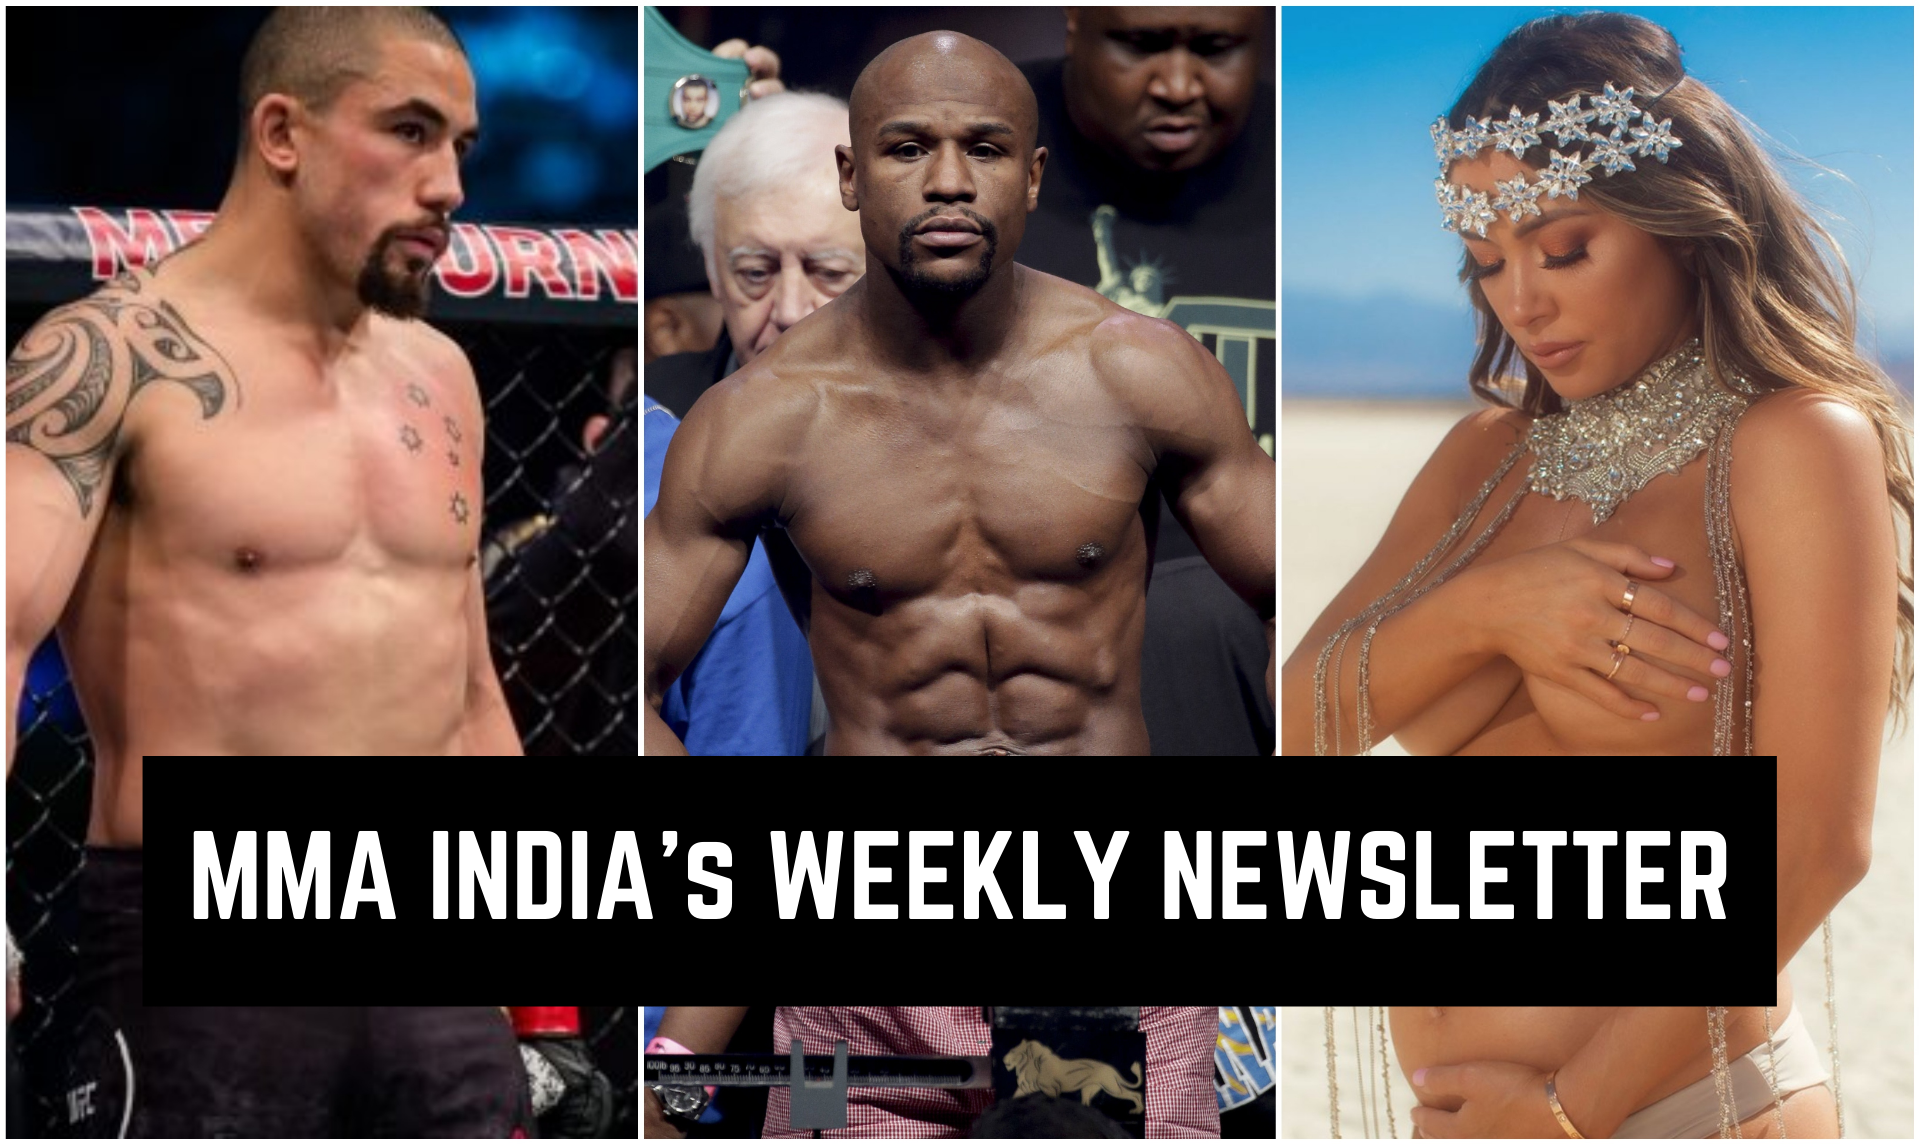 MMA India's Weekly Roundup (21 July – 27 July): The Reaper returns, Arianny Celeste's pregnancy and more! - Arianny Celeste